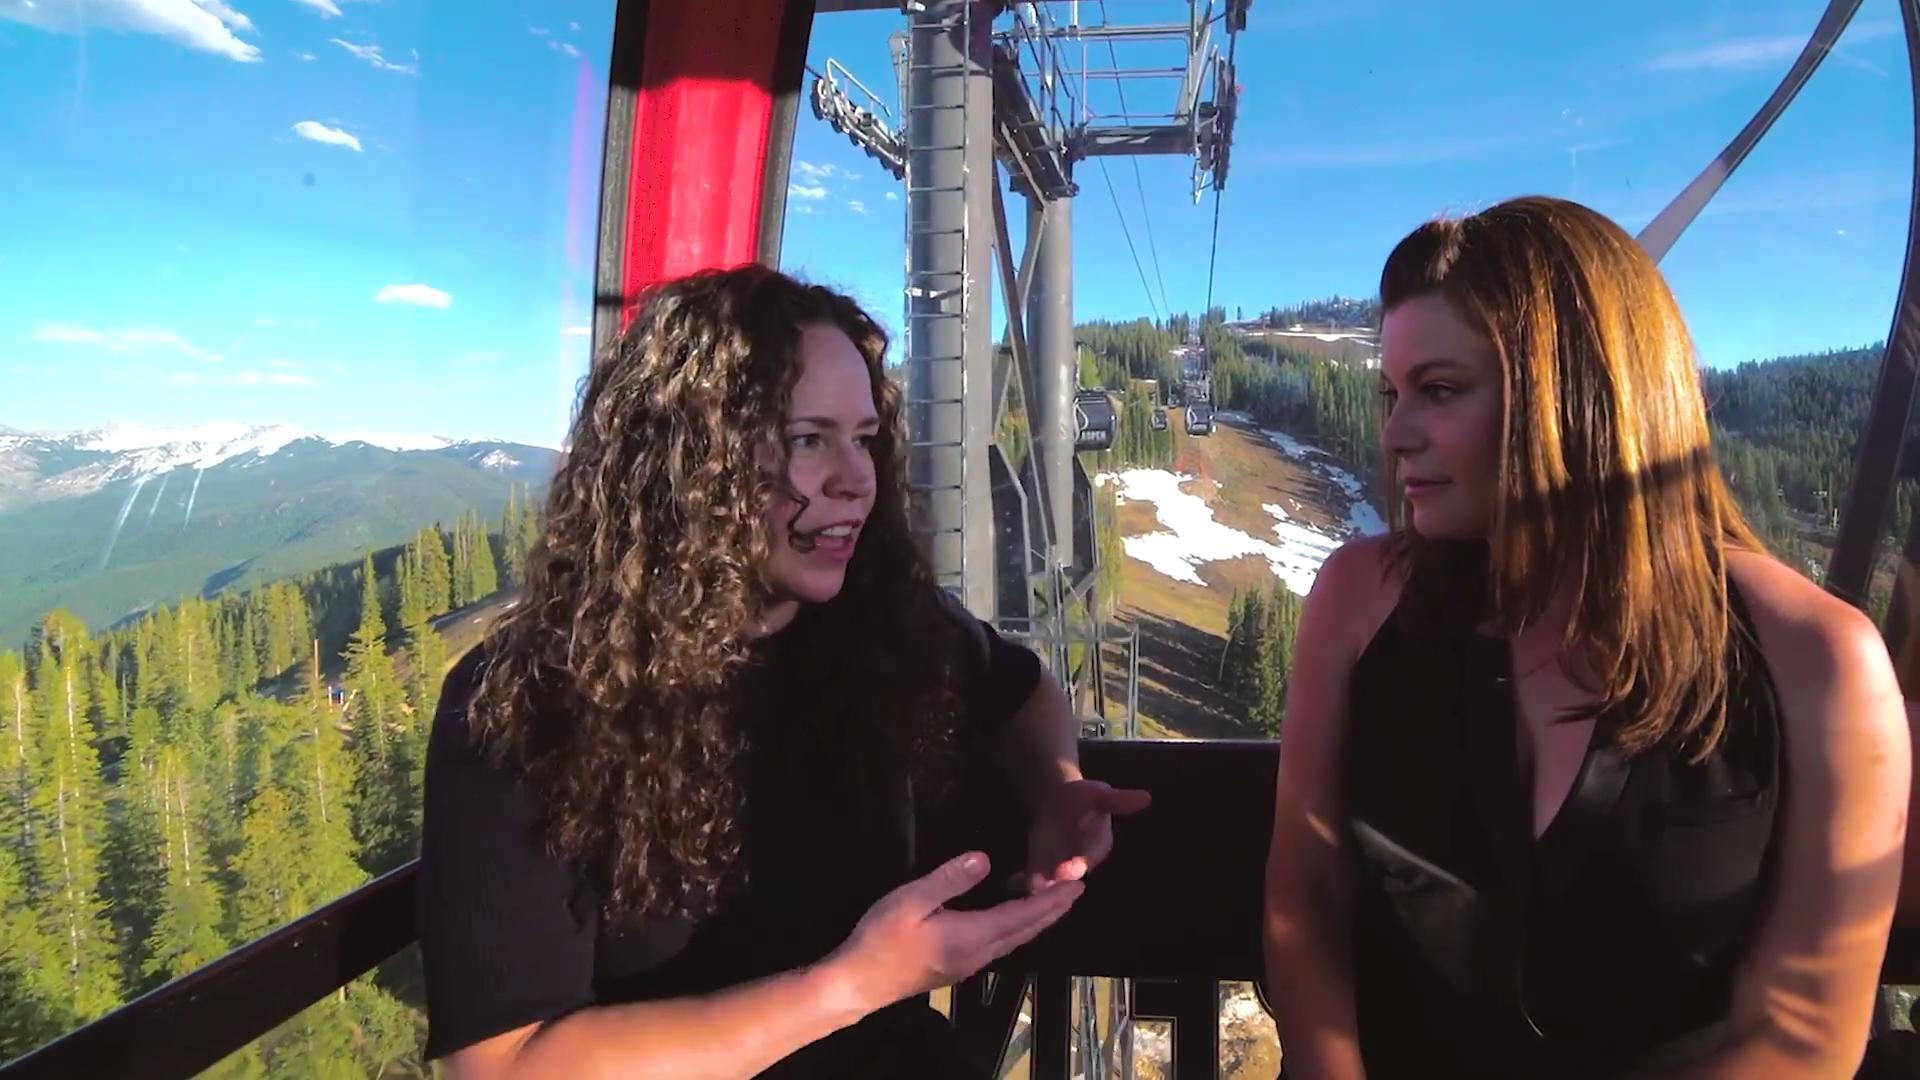 Taste of the Classic: Welcome to the 35th Food & Wine Classic in Aspen